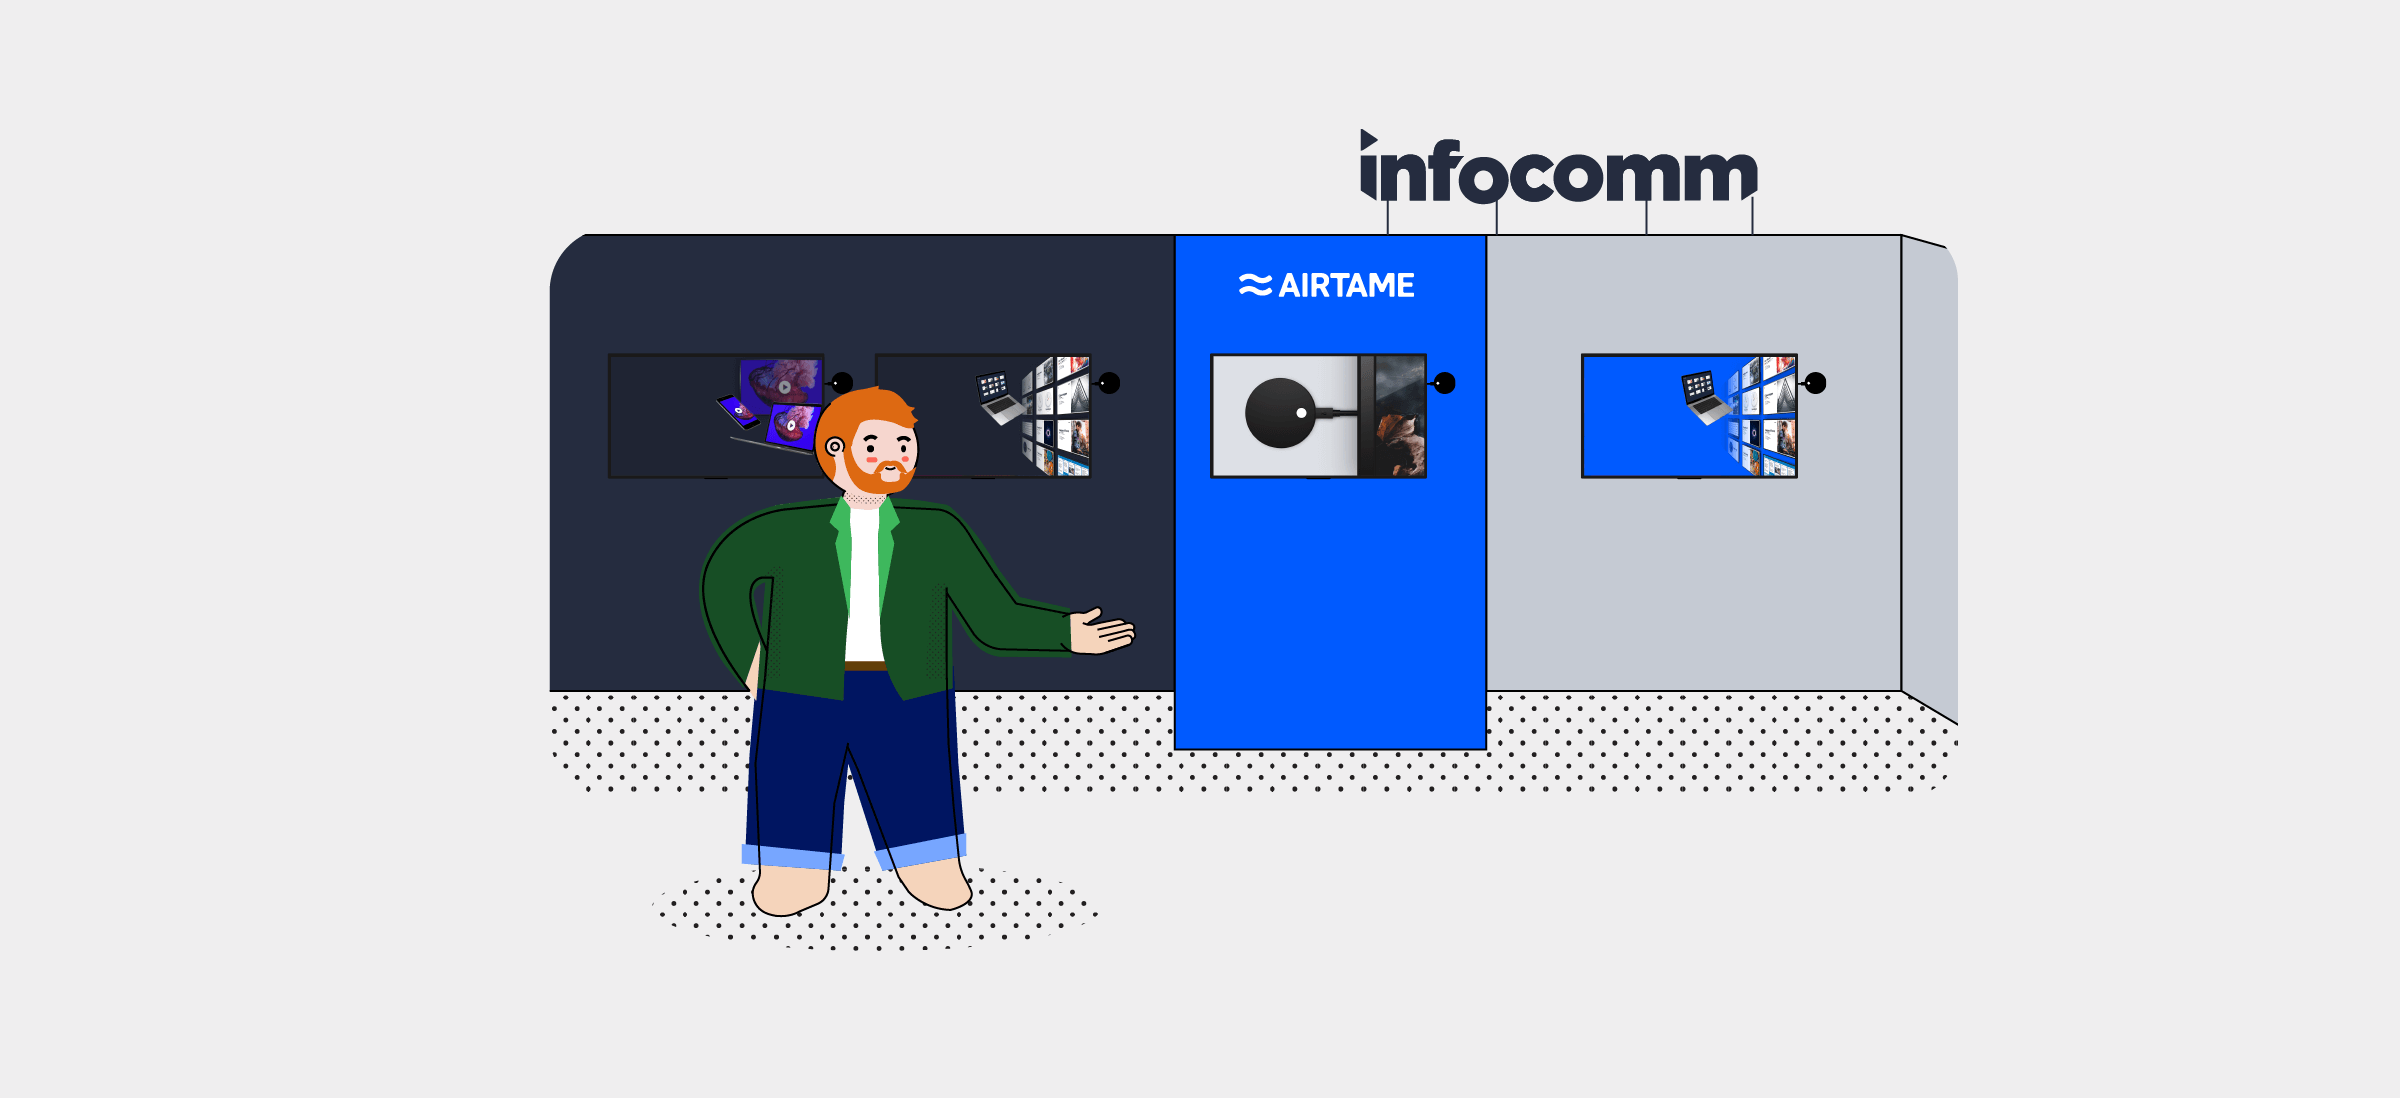 We're headed to Infocomm!